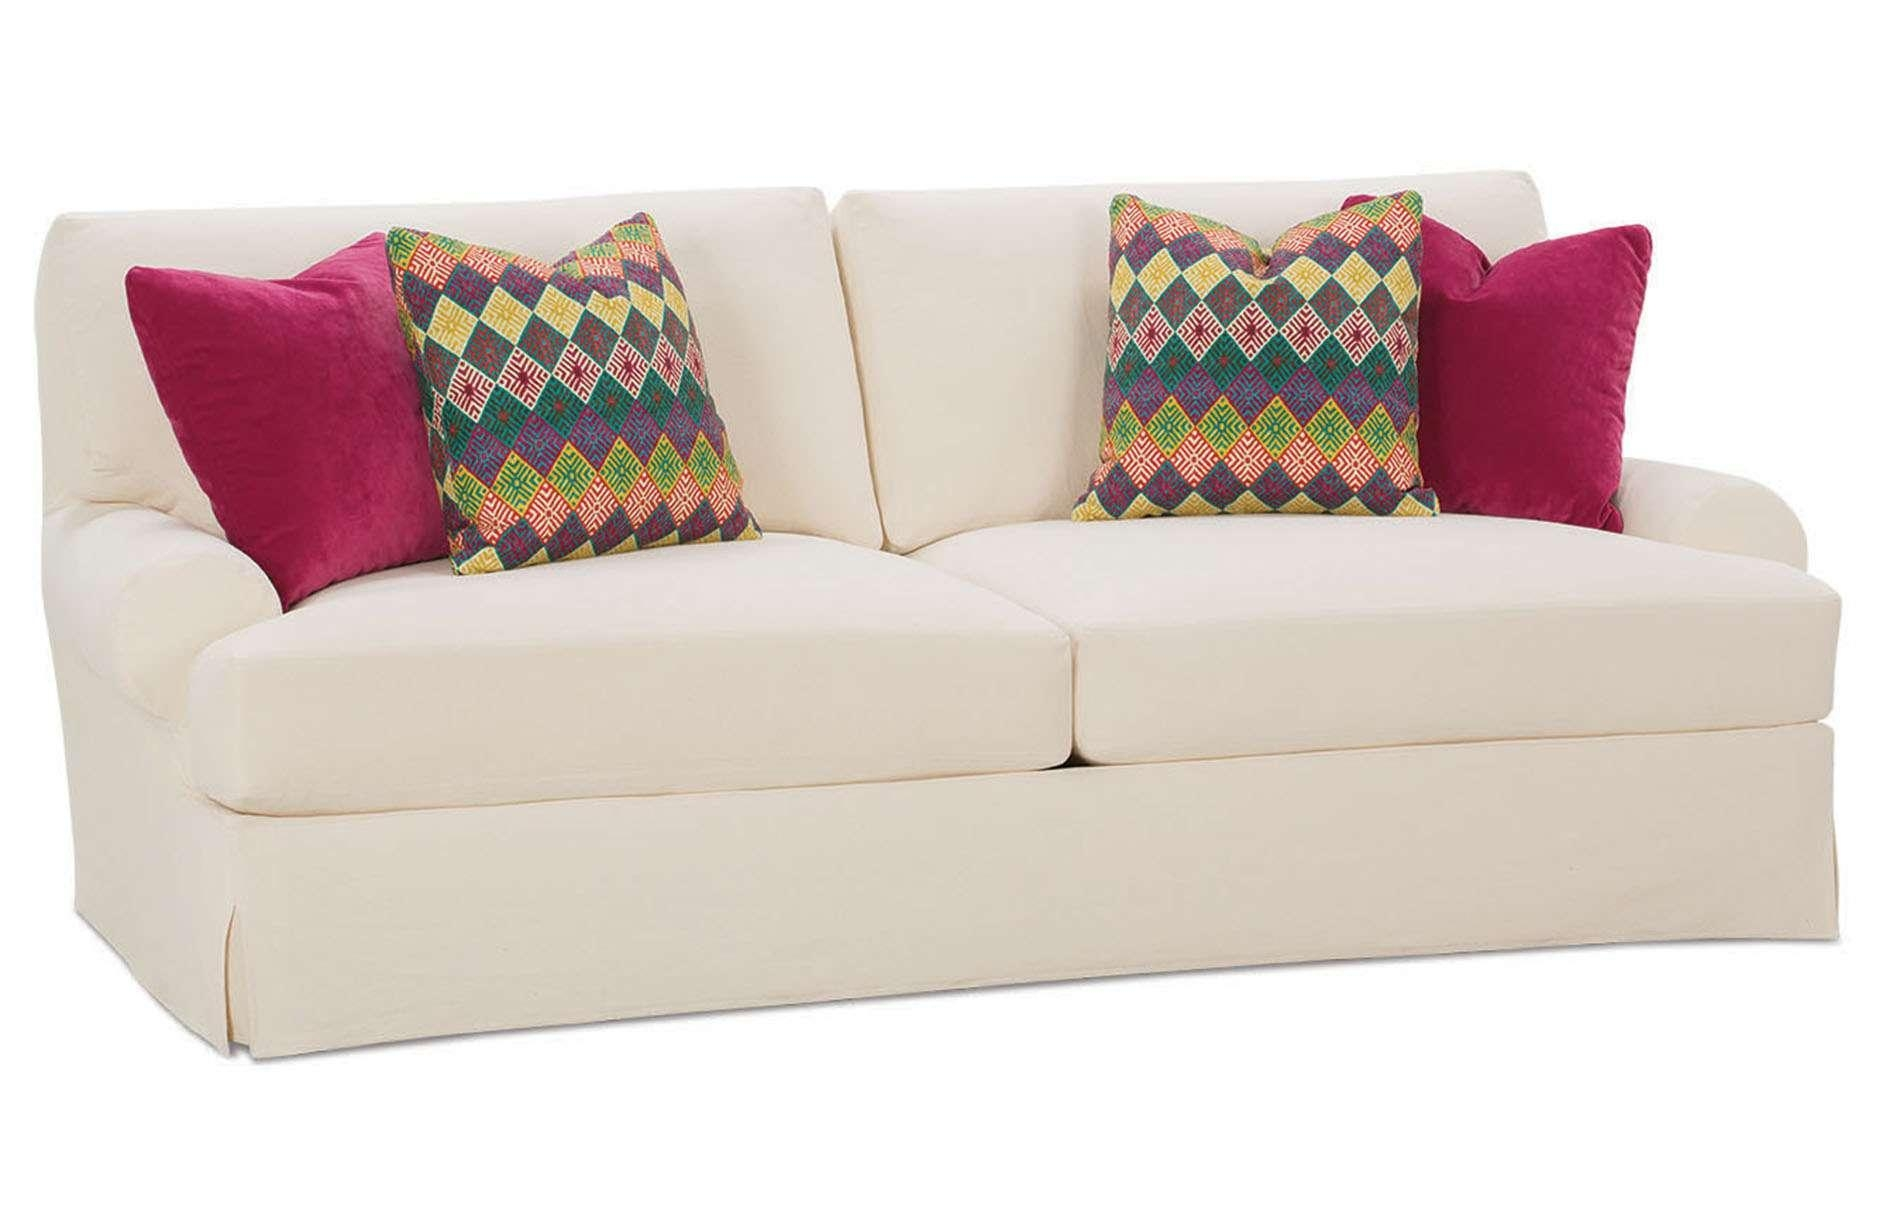 Armless Sofa Slipcover With Concept Photo 15746 | Kengire Pertaining To Armless Sofa Slipcovers (Image 4 of 20)